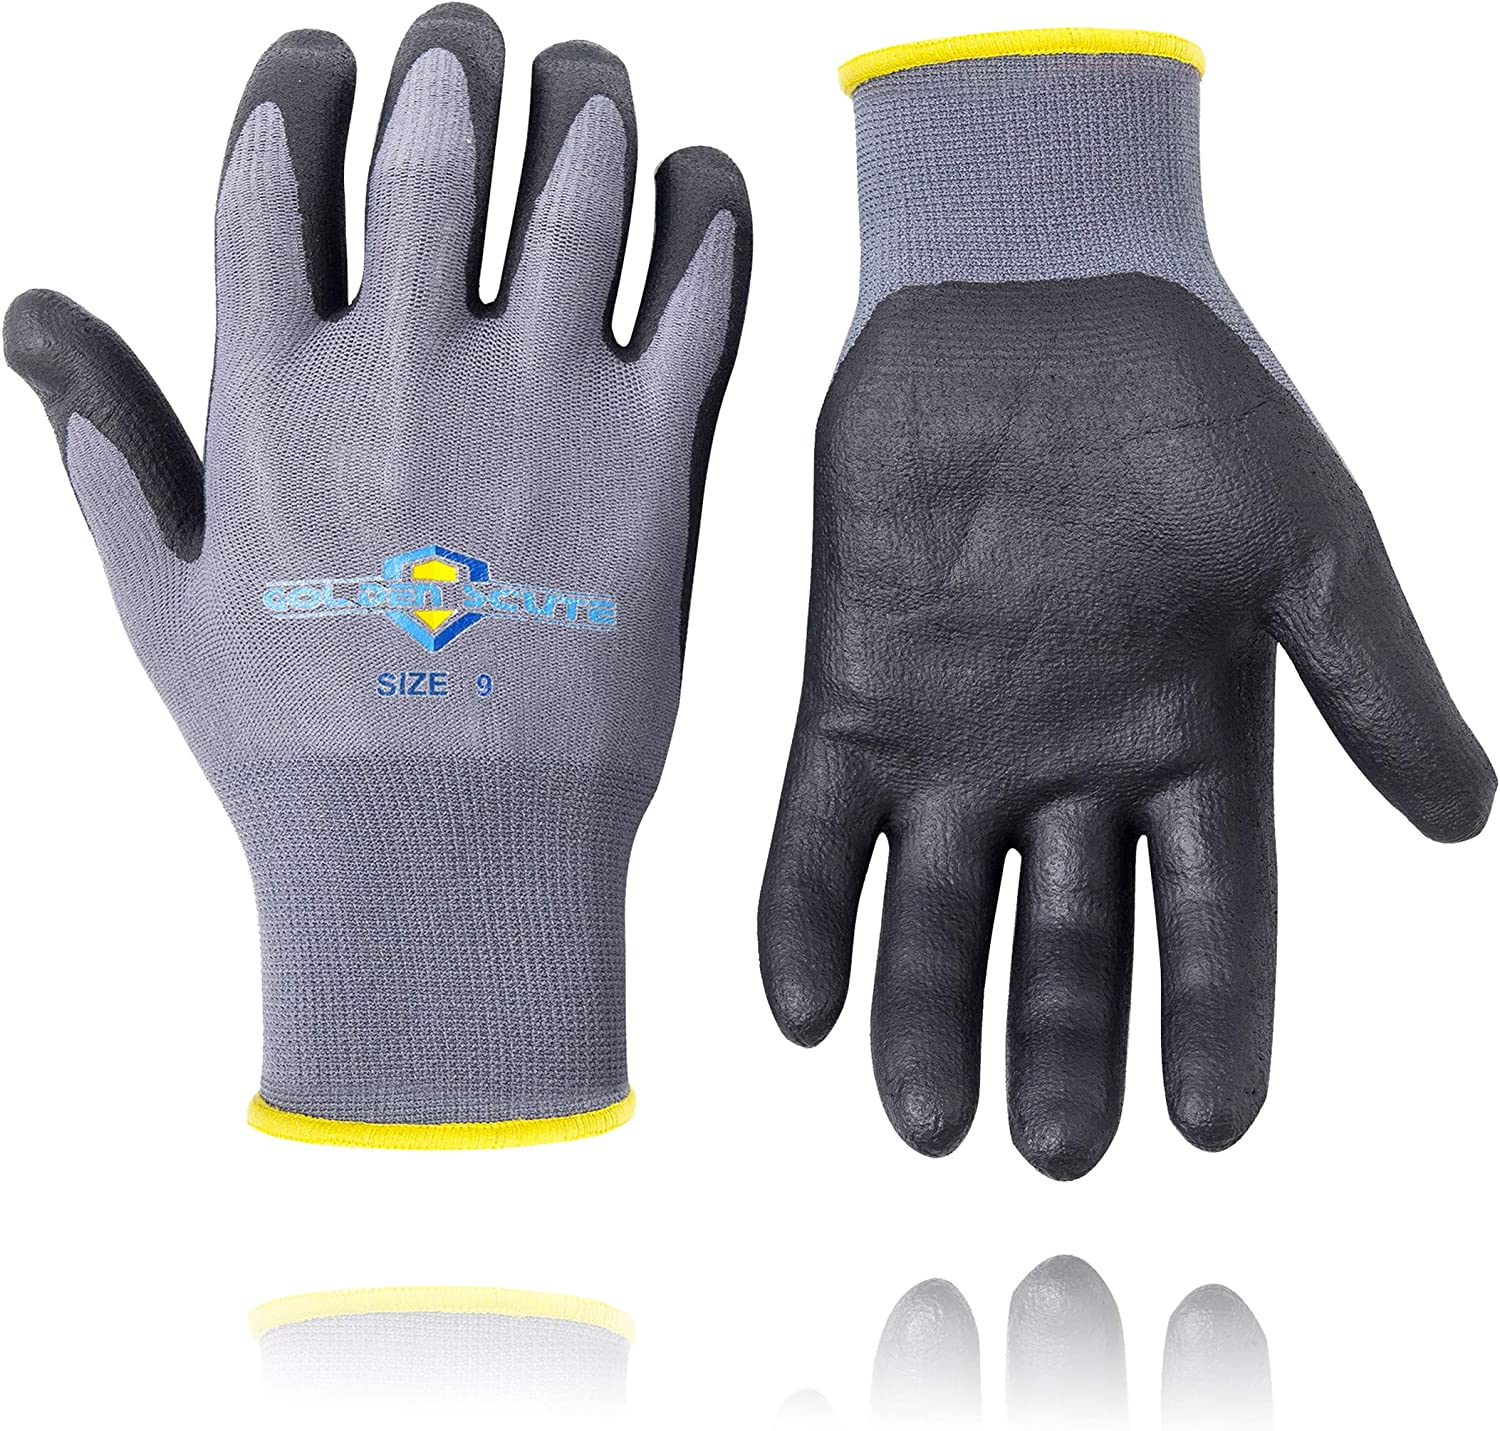 Ultra Tech Seamless Nitrile Foam Work Safety Gloves Construction Assembly Small